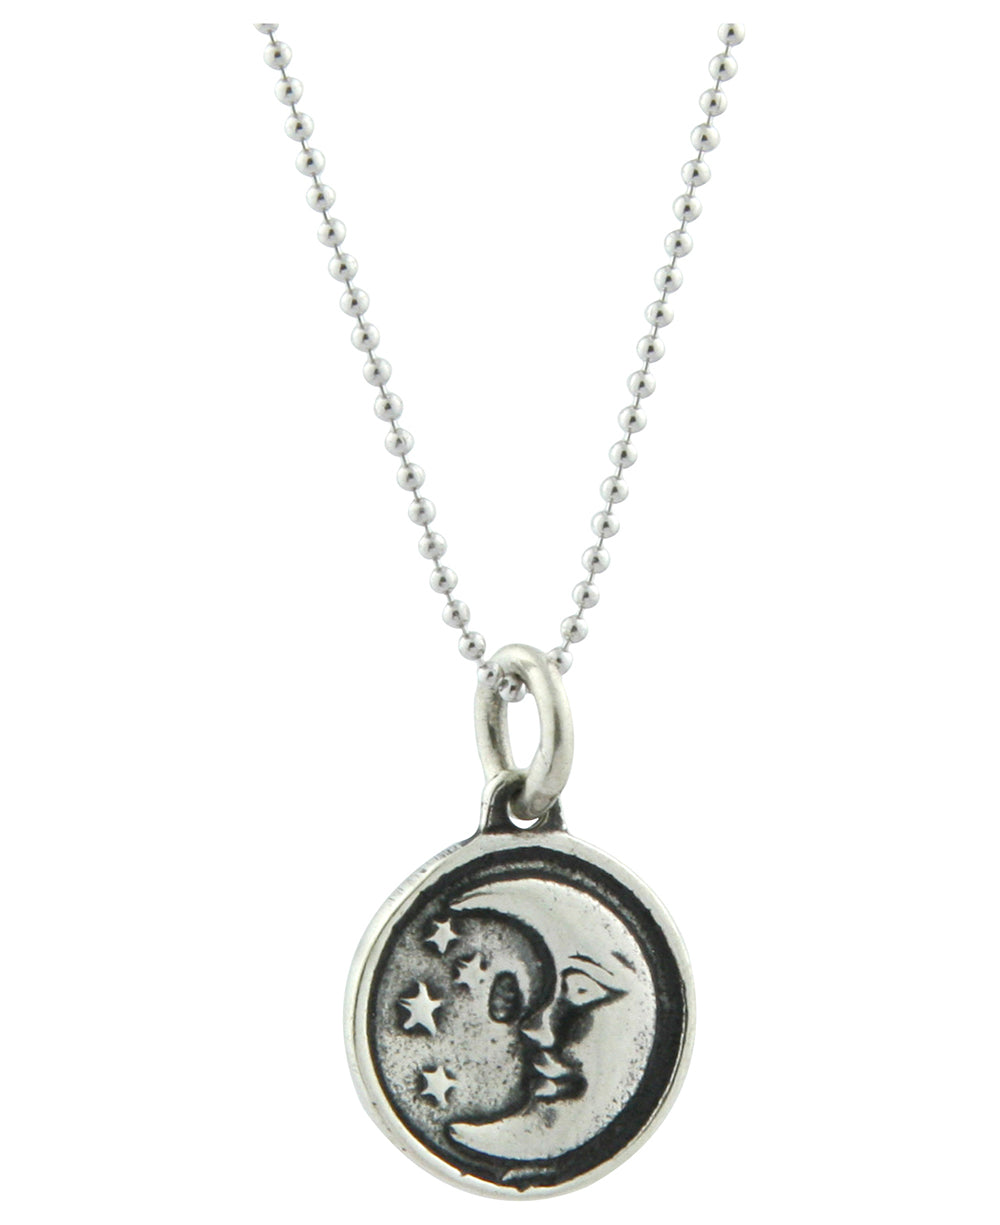 Sterling Silver Sun and Moon Pendant Necklace, Thailand ...